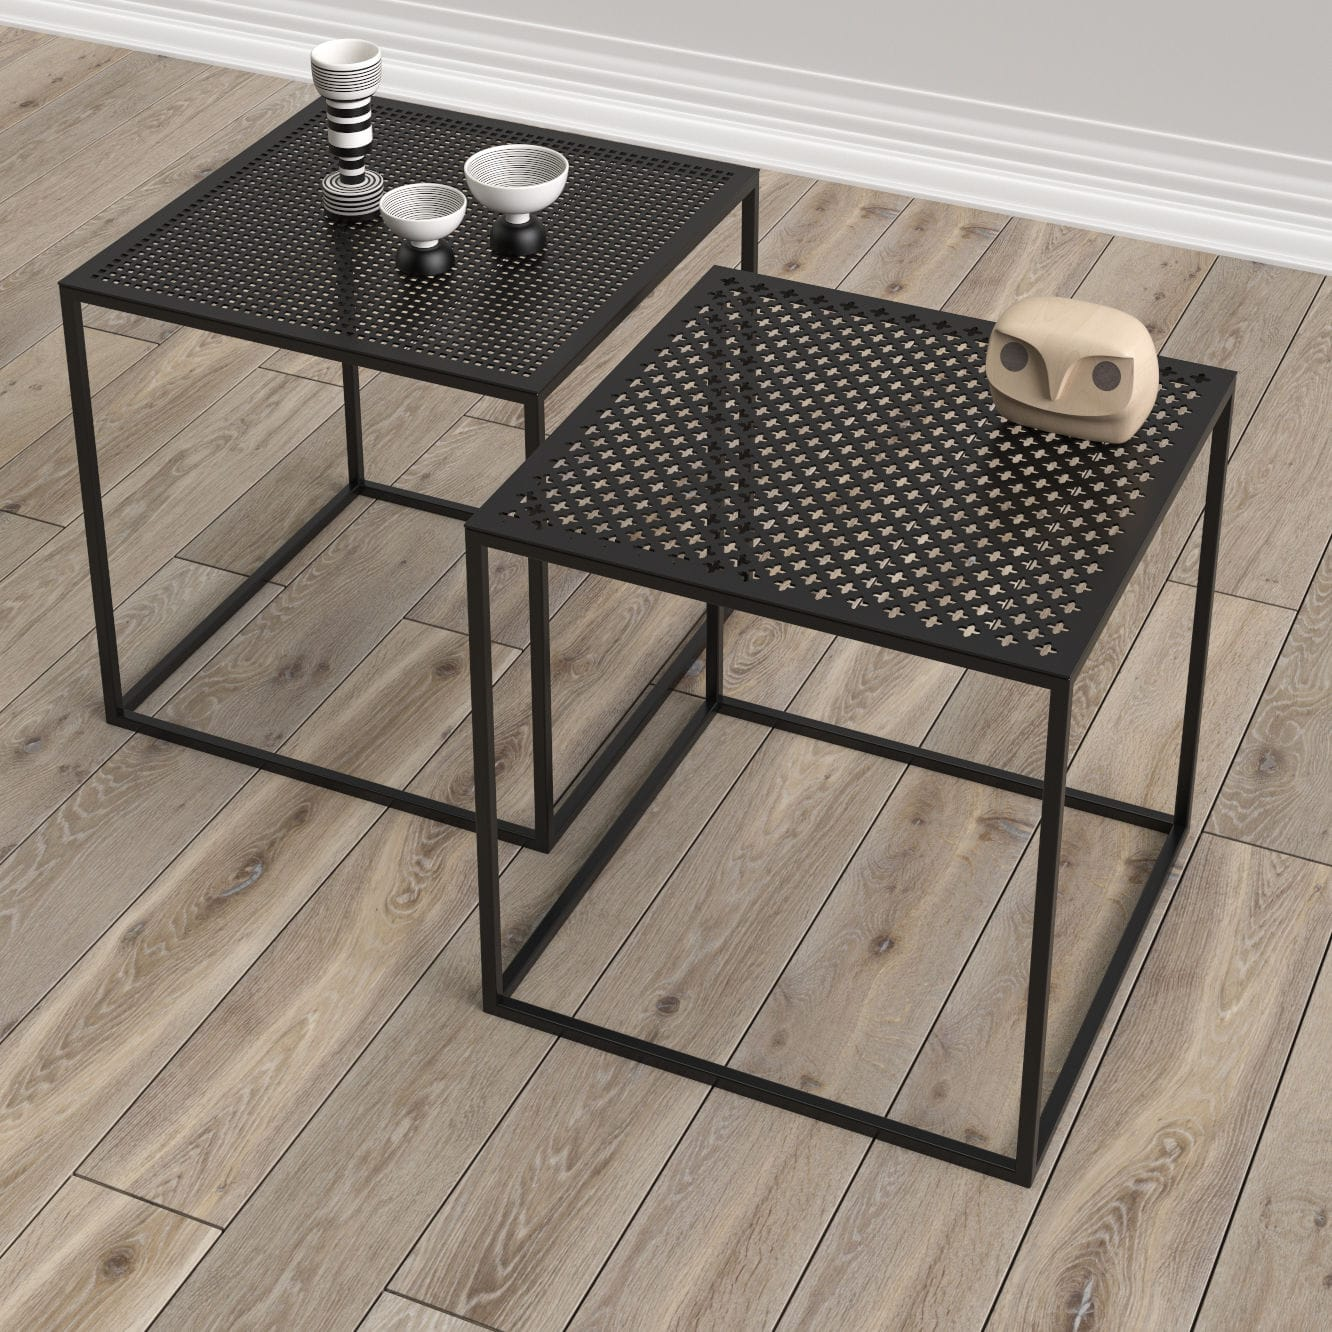 Contemporary Coffee Table Powder Coated Steel Square Black